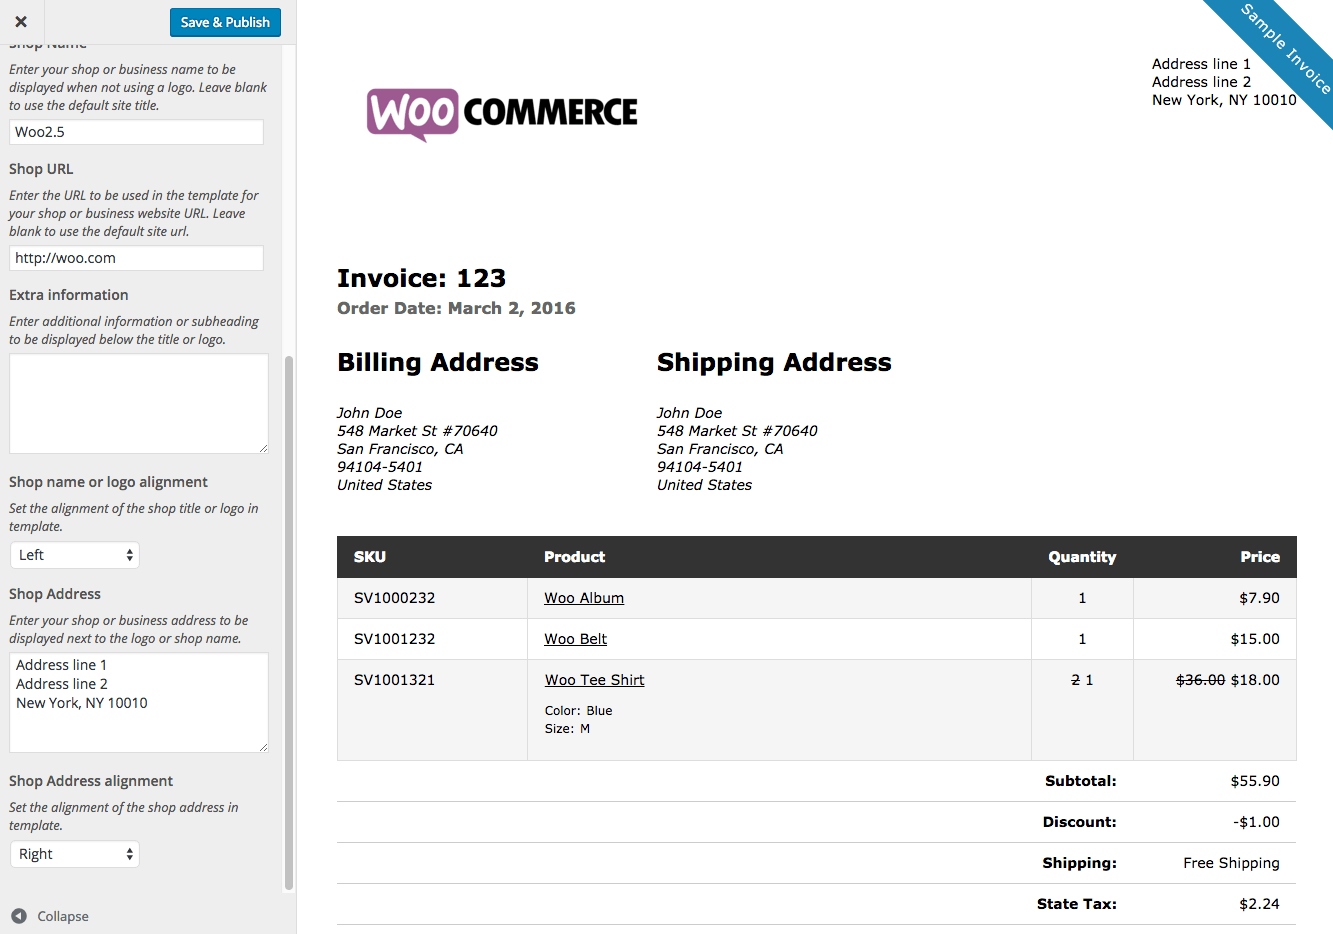 Carsforlessus  Unique Woocommerce Print Invoices Amp Packing Lists  Woocommerce Docs With Handsome Woocommerce Print Invoices  Packing Lists Customizer With Astounding Star Tsp Eco Receipt Printer Also Rent Payment Receipt Template In Addition Receipt Keeper Organizer And Plate Return Receipt As Well As Receipts Template Word Additionally Neat Receipts Mac From Docswoocommercecom With Carsforlessus  Handsome Woocommerce Print Invoices Amp Packing Lists  Woocommerce Docs With Astounding Woocommerce Print Invoices  Packing Lists Customizer And Unique Star Tsp Eco Receipt Printer Also Rent Payment Receipt Template In Addition Receipt Keeper Organizer From Docswoocommercecom